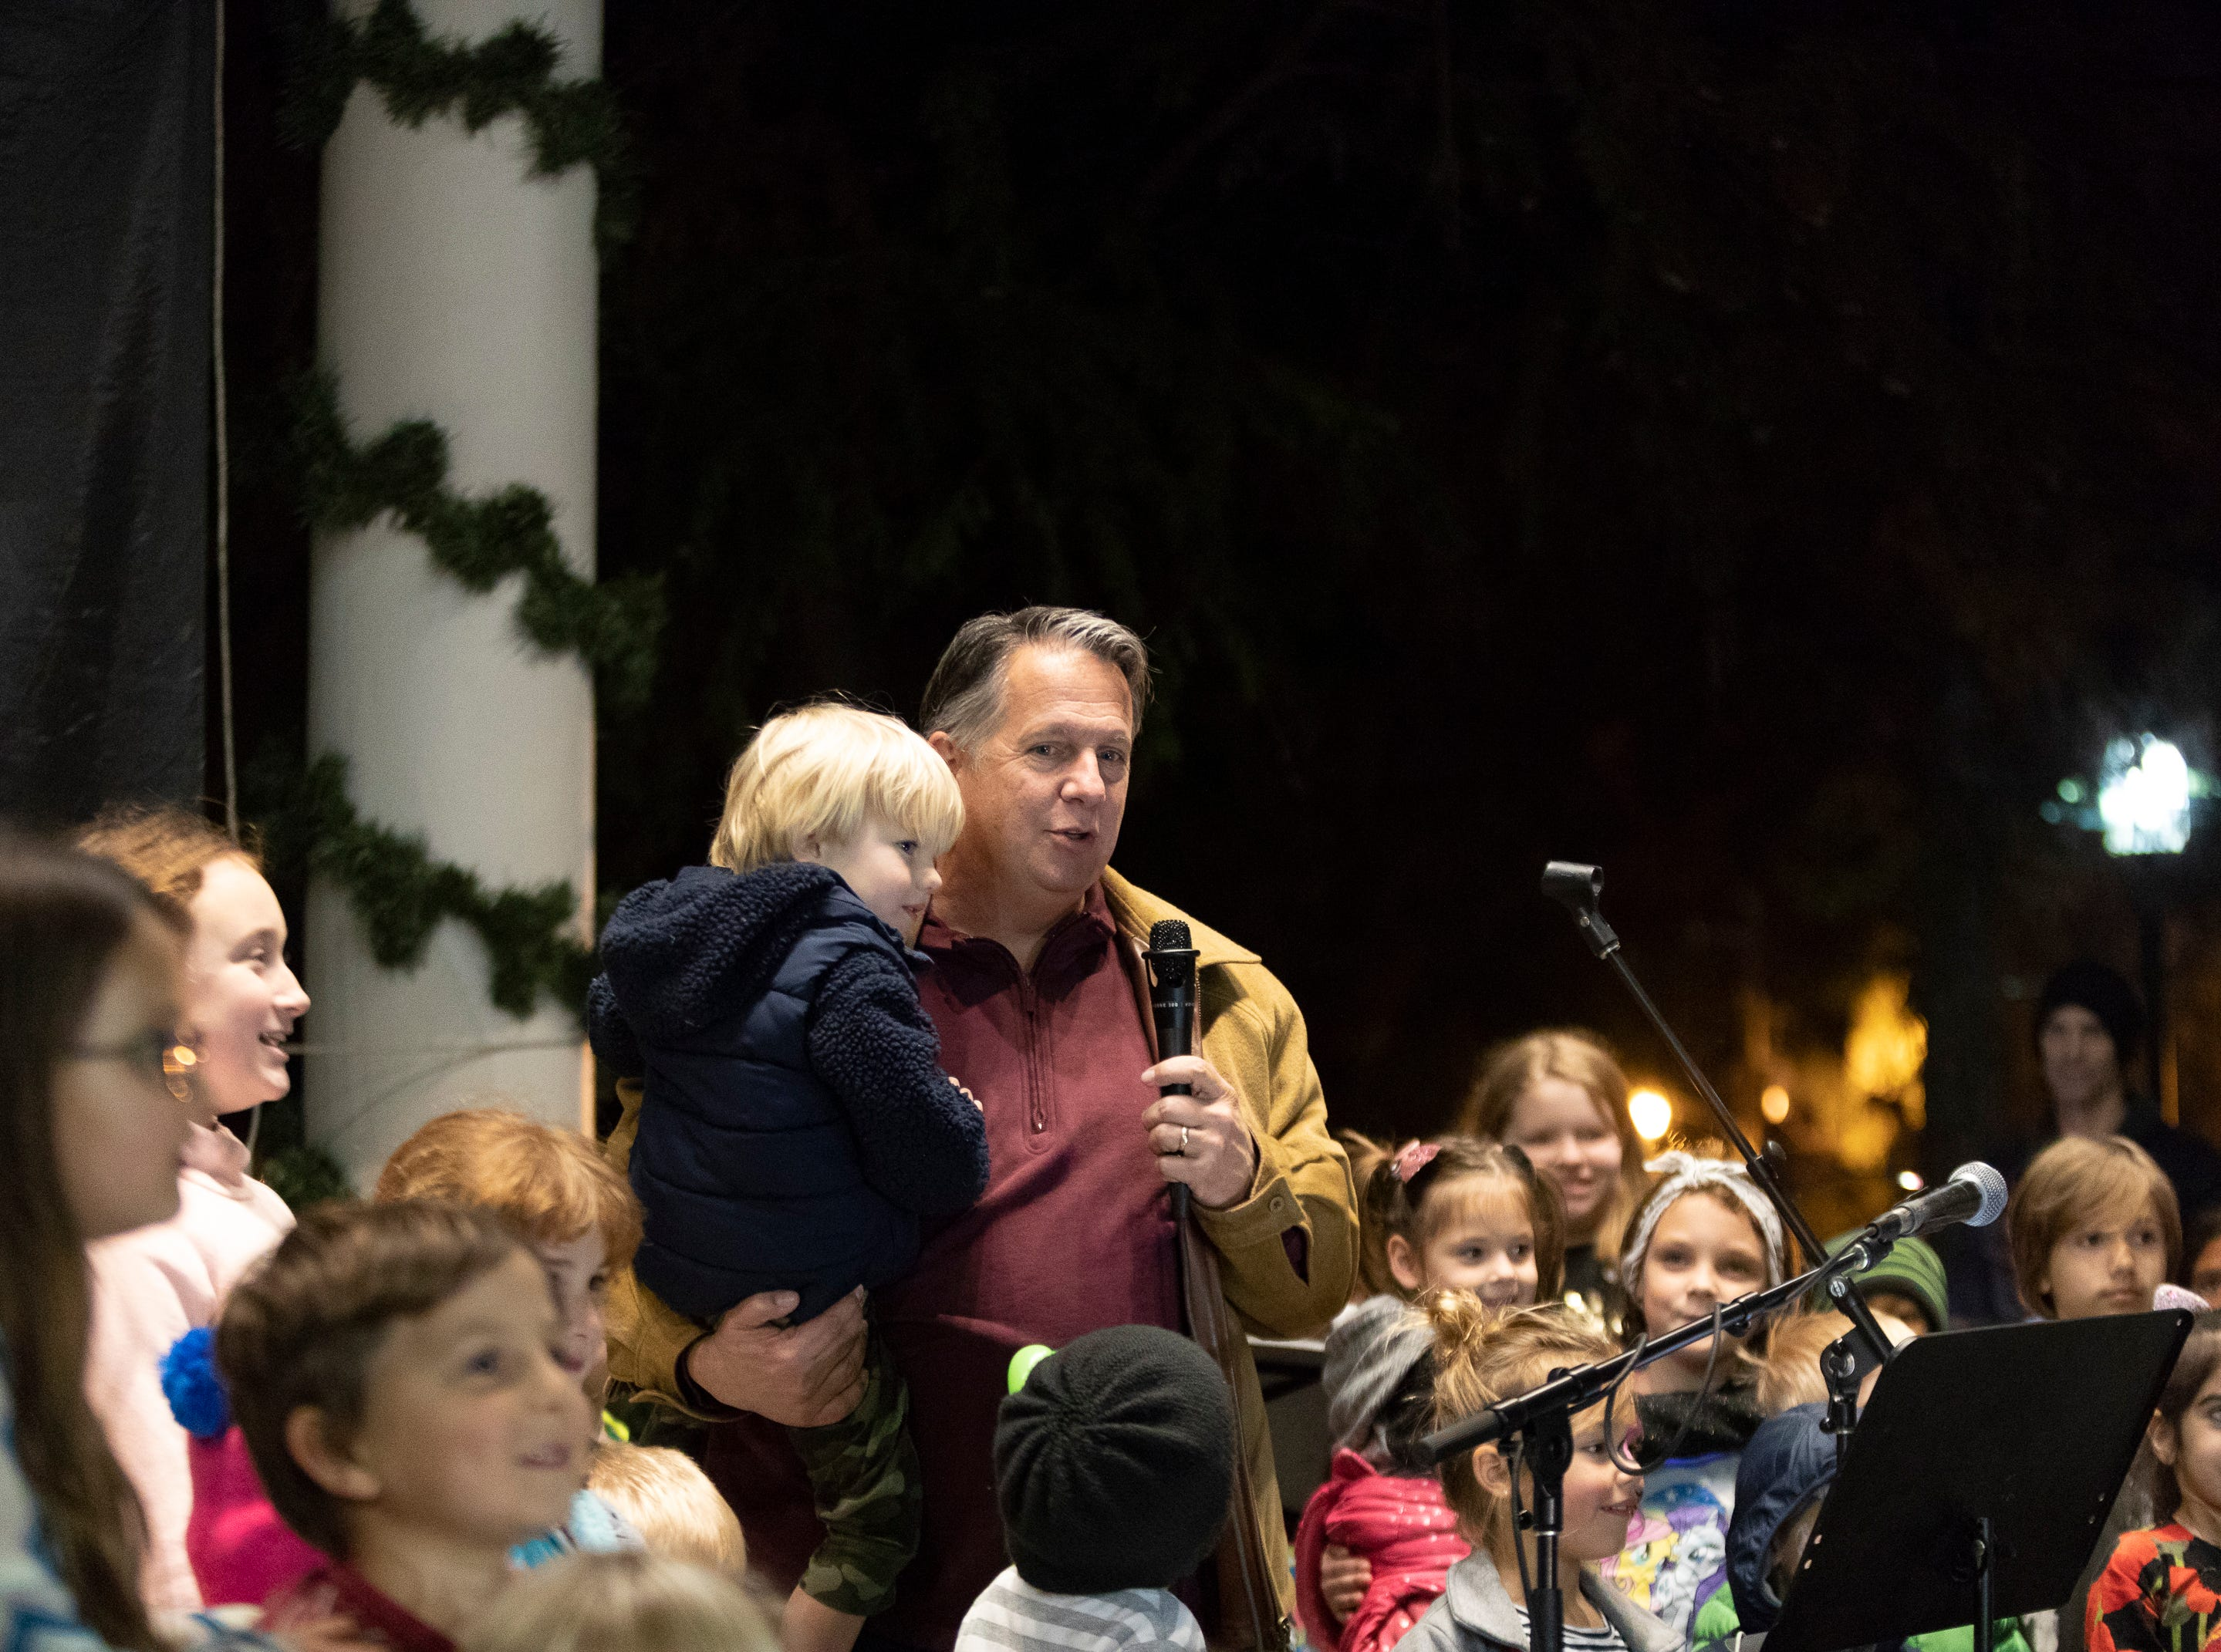 The Pine Leaf Boys played a special Downtown Alive, Thanksgiving Eve. Young and old enjoied music, food and dancing. Mayor-President Joel Robideaux lit the Christmas tree with help for the children in the crowd.